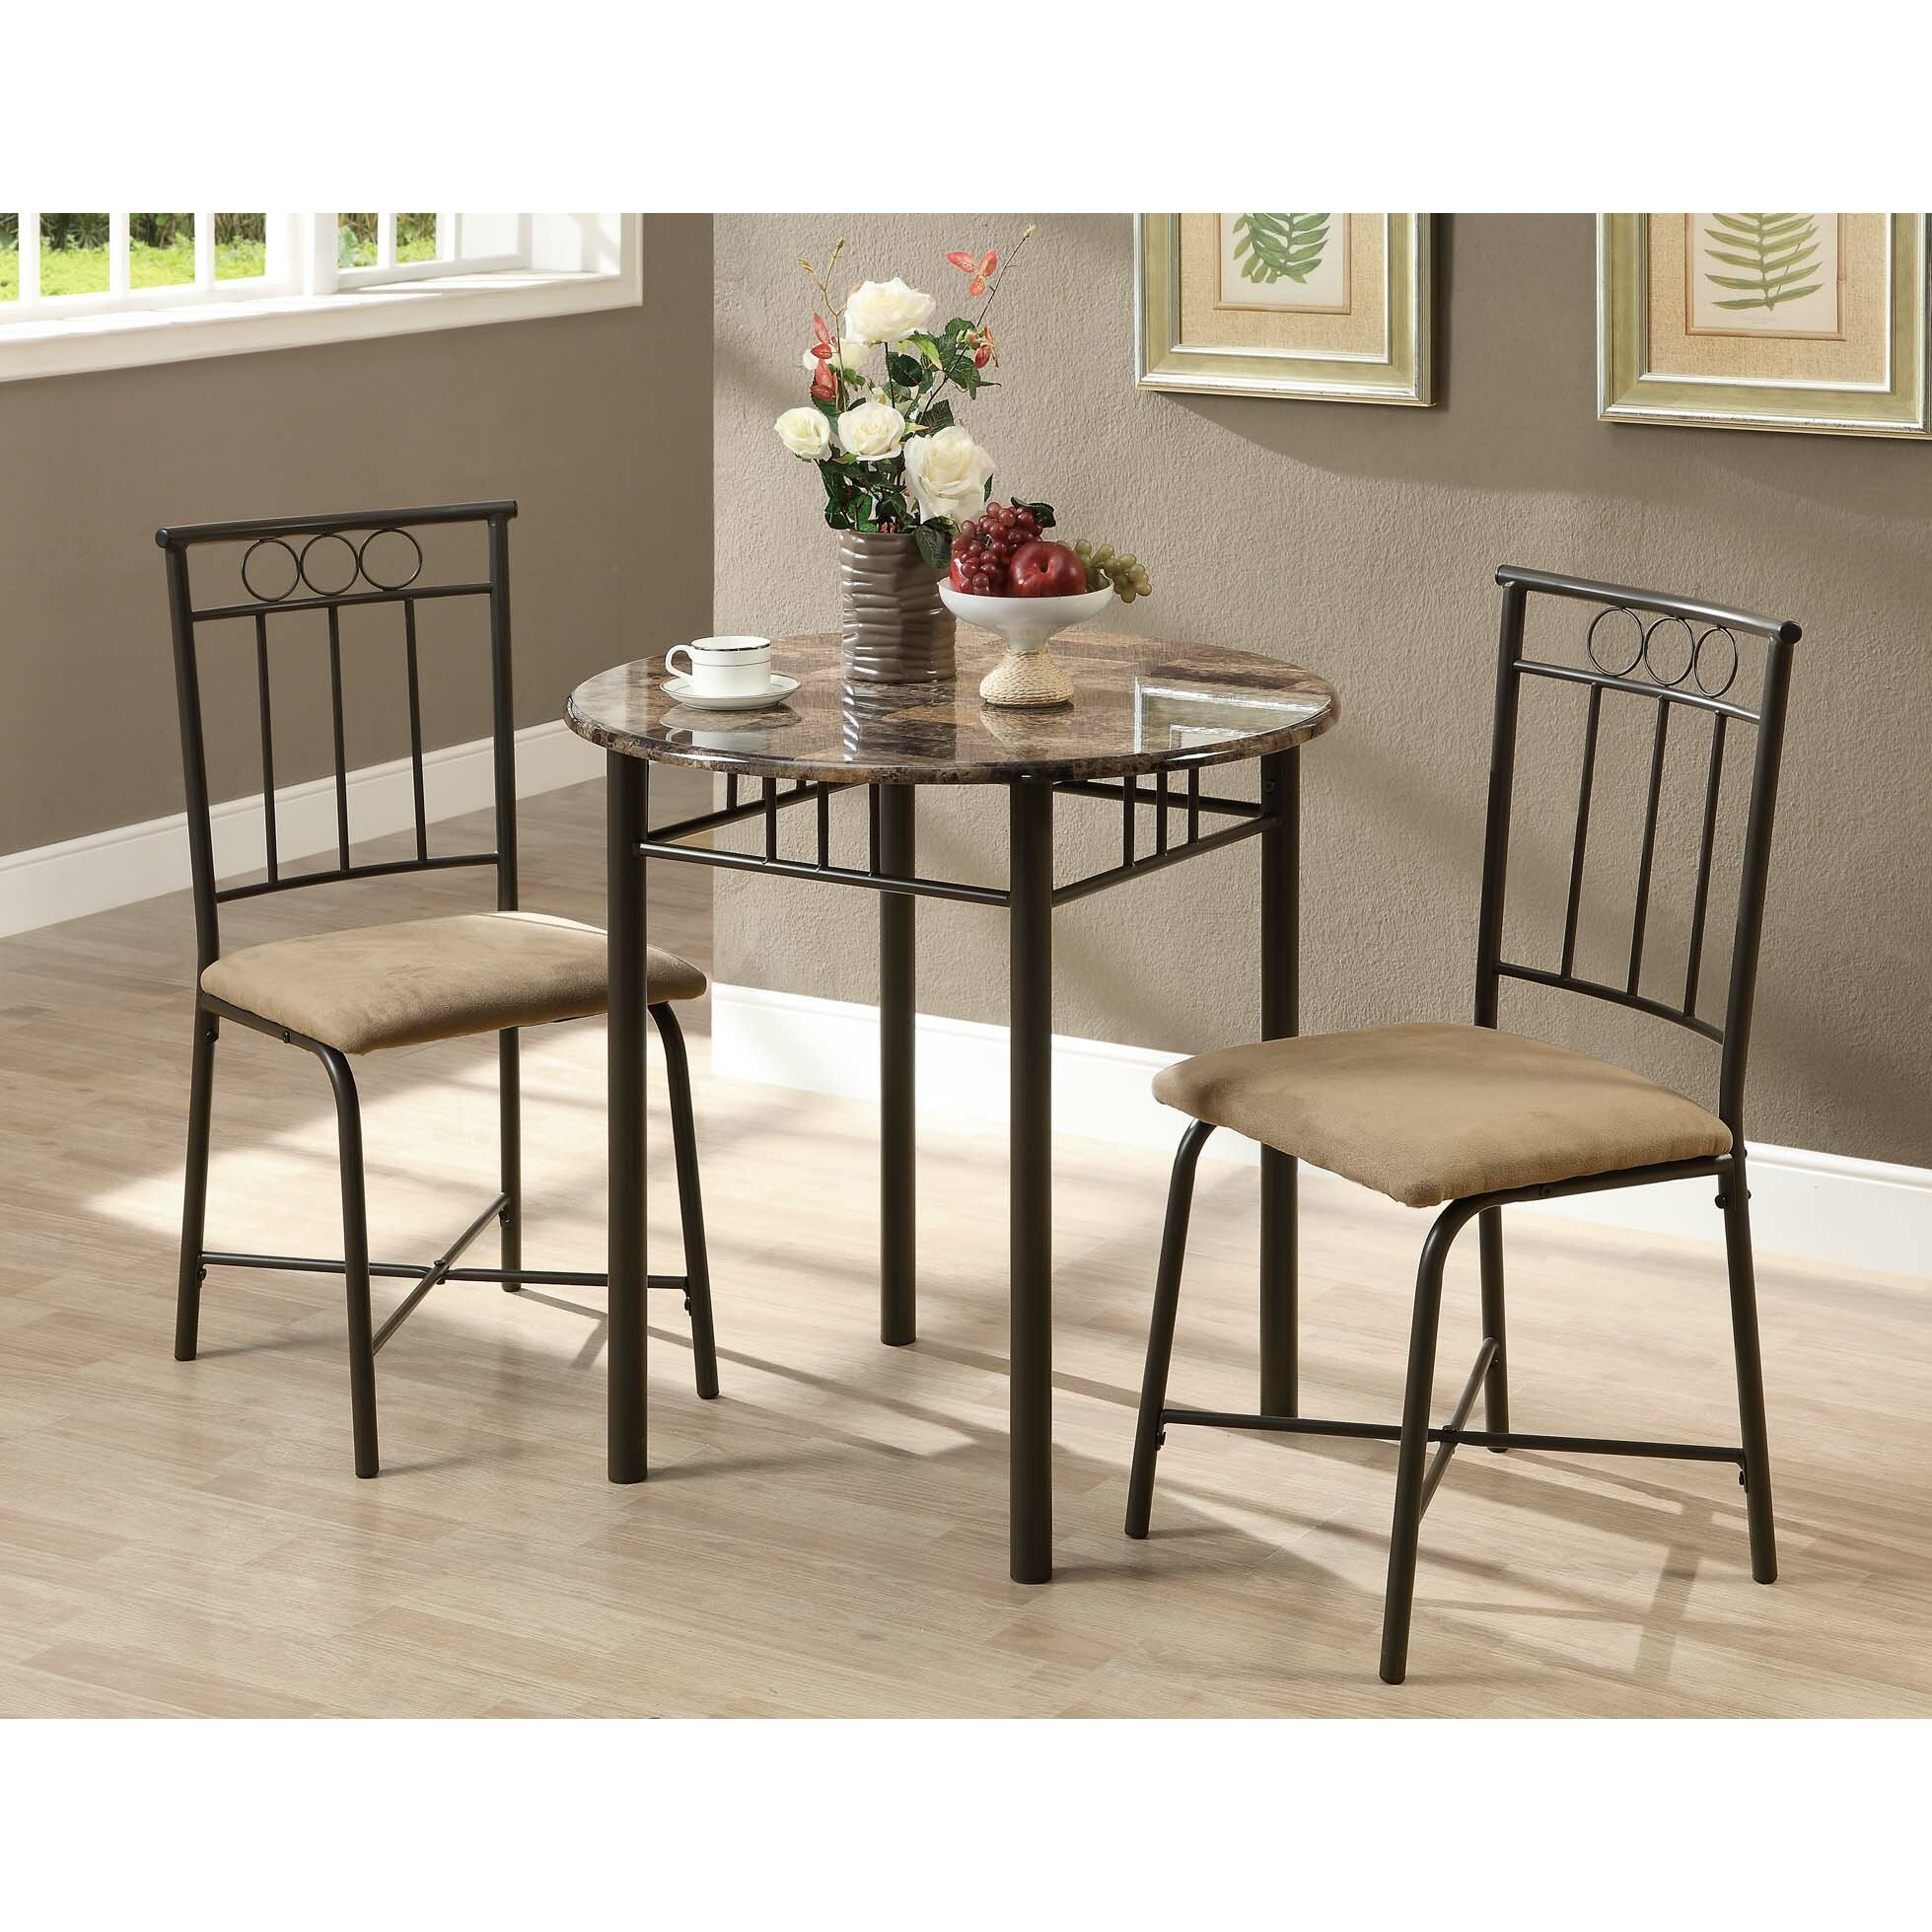 monarch specialties inc 3 piece dining set ii reviews wayfair. Black Bedroom Furniture Sets. Home Design Ideas